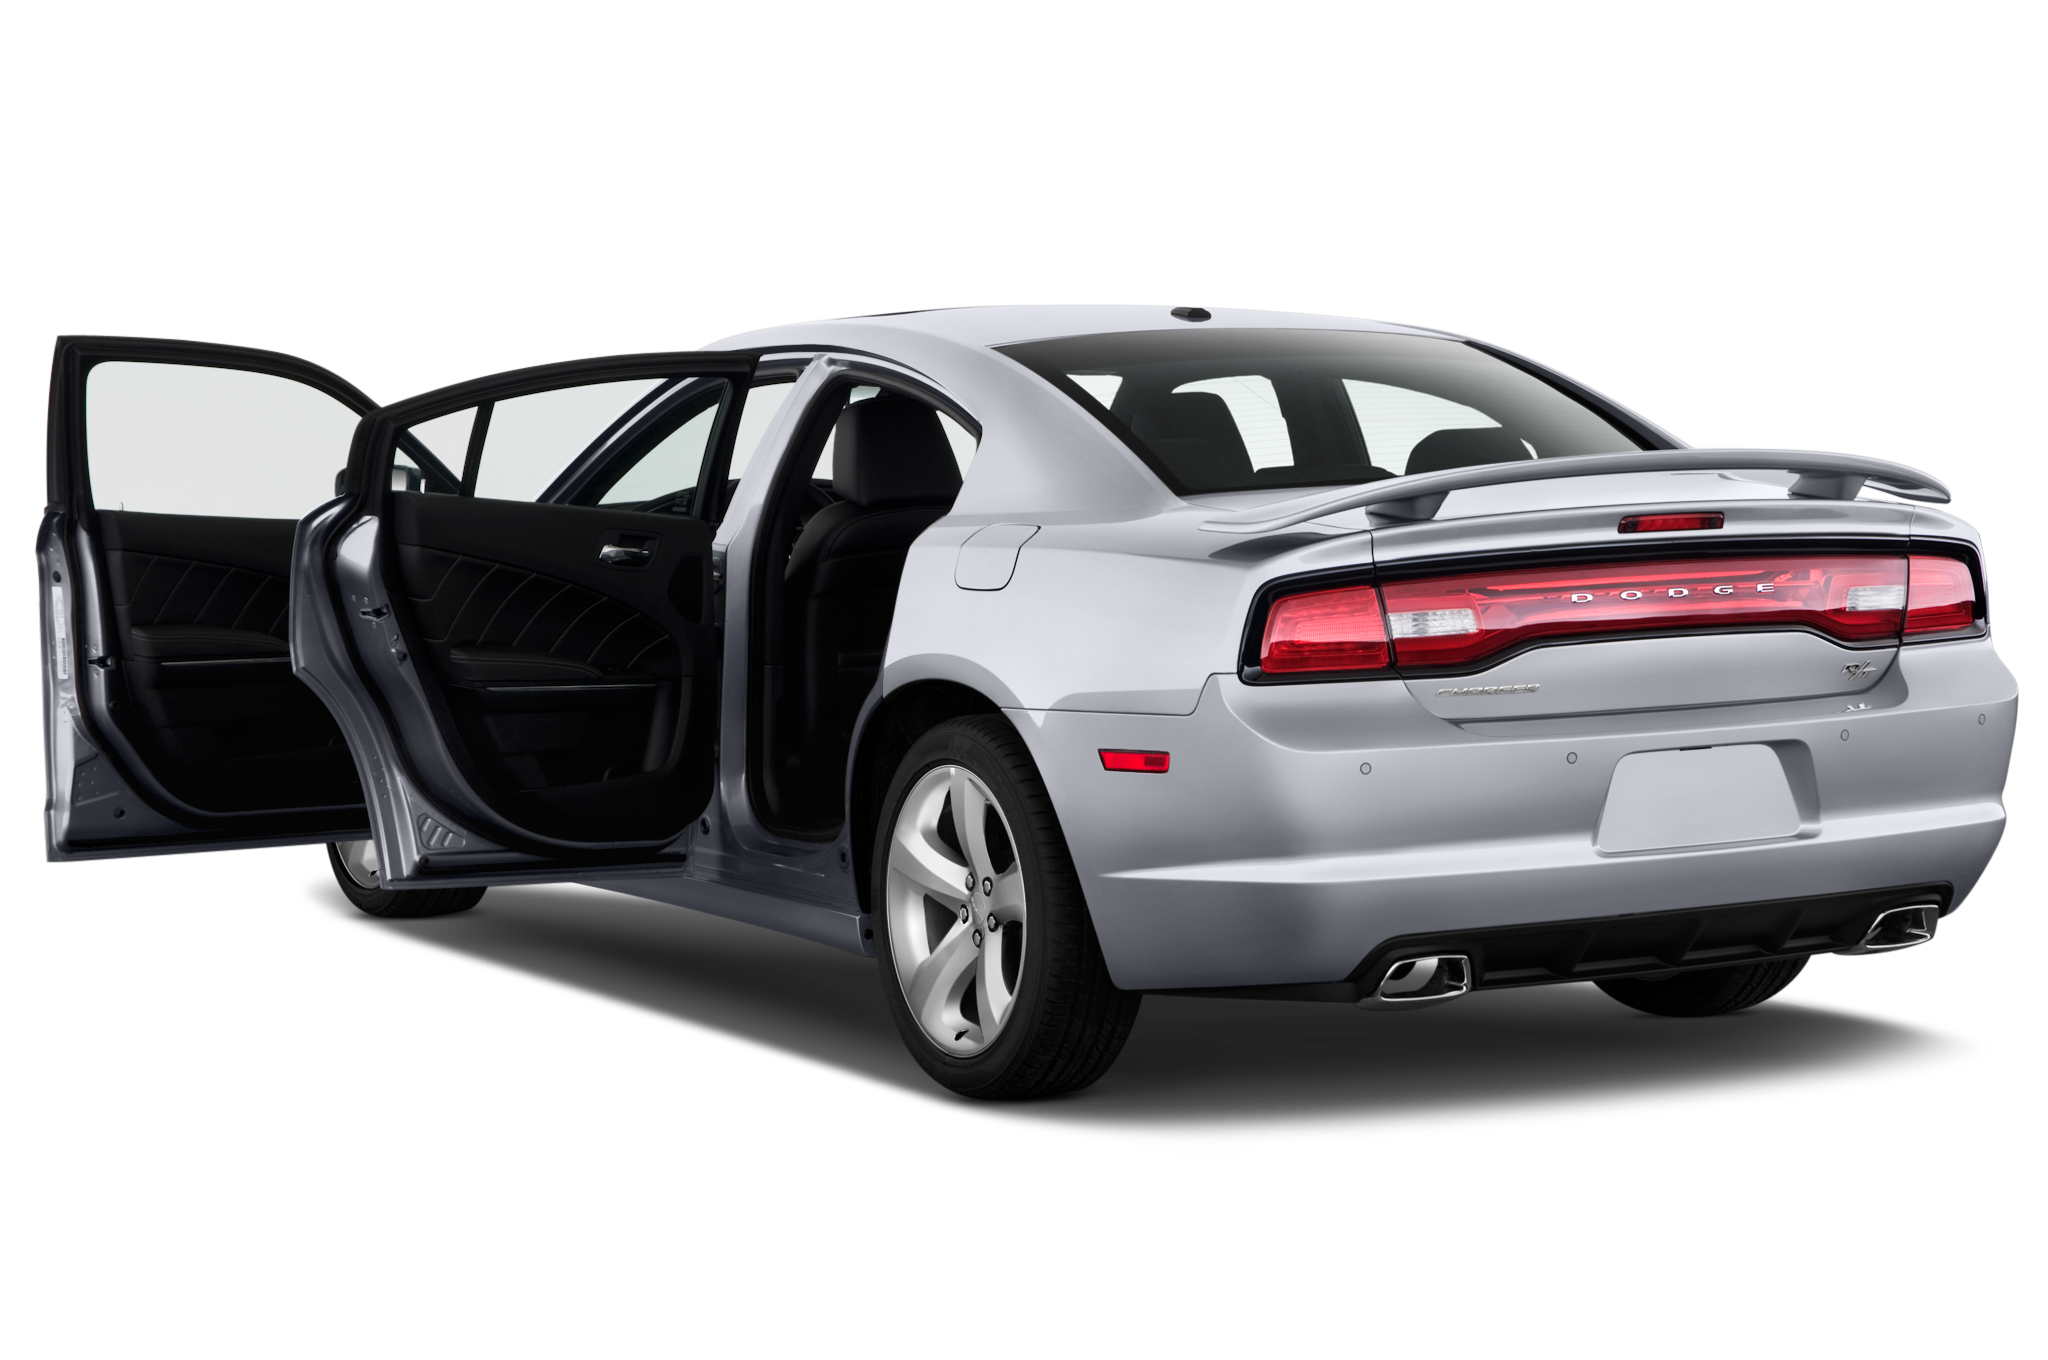 Dodge Charger 2014 International Price Overview